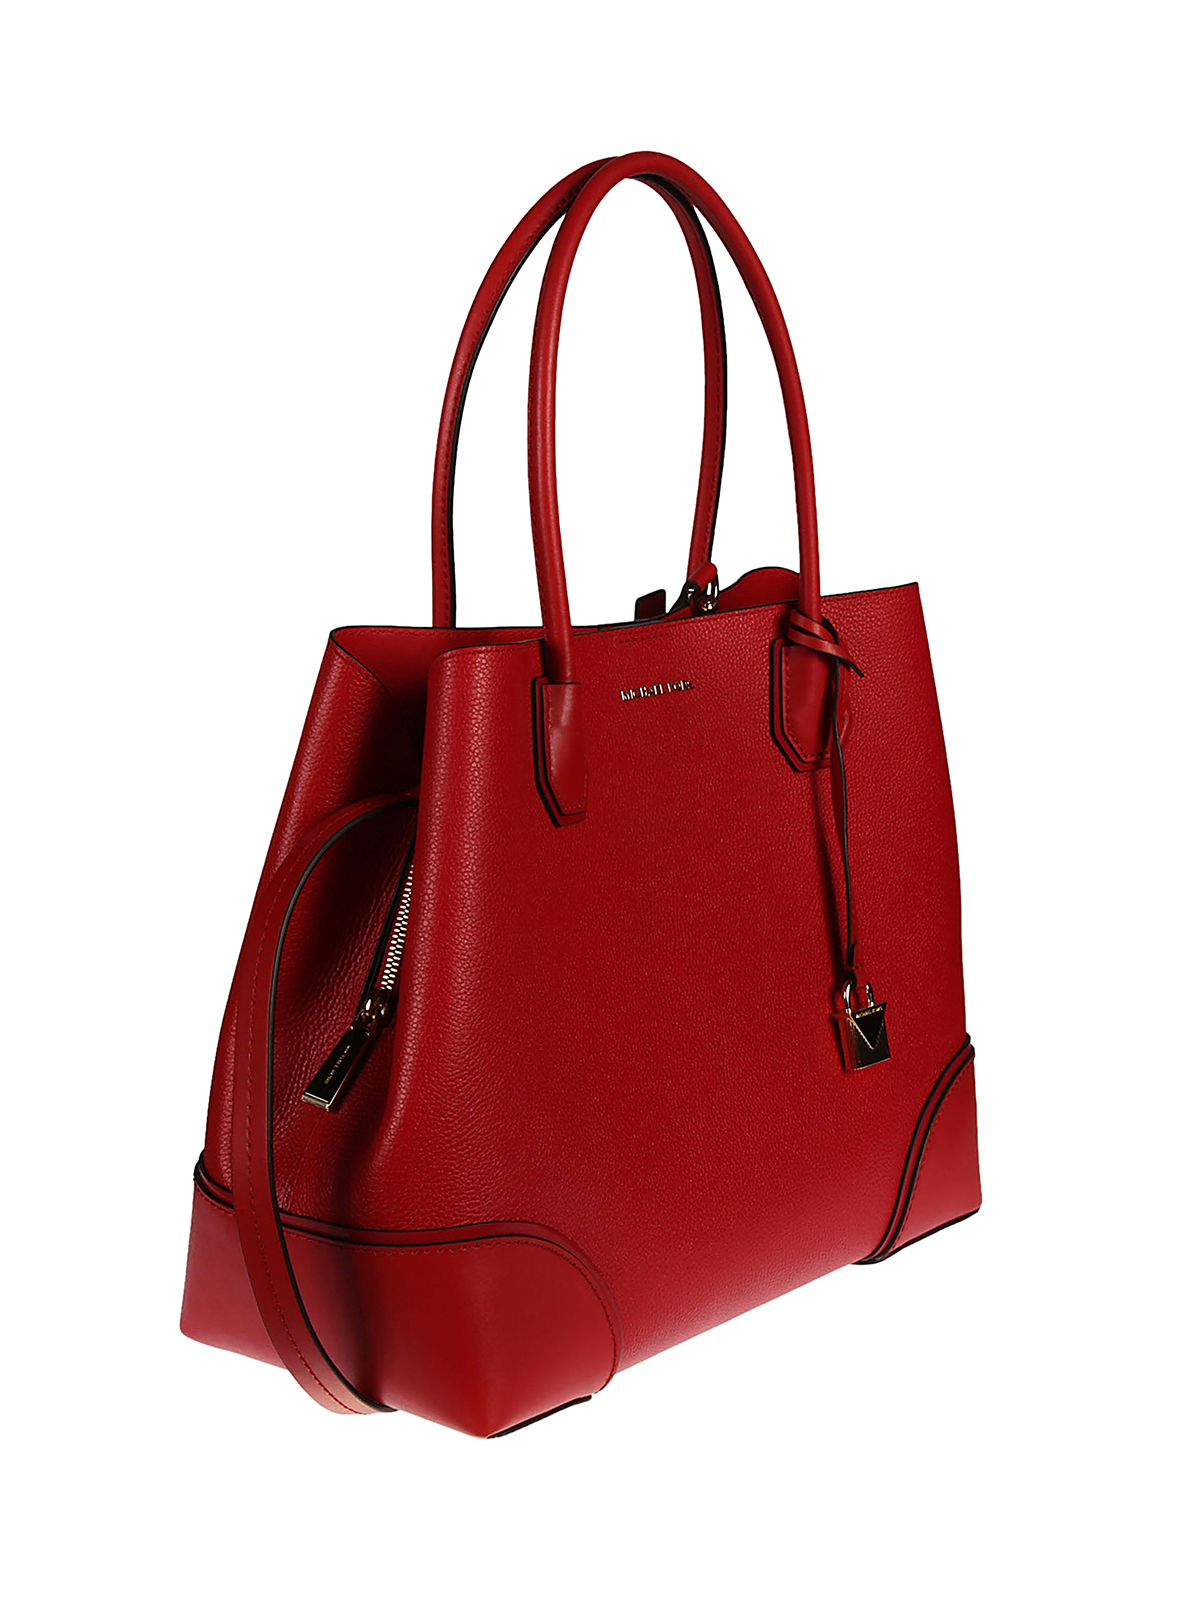 062a24d02e0f ... where to buy michael kors totes bags online mercer gallery large  leather tote 43902 b2657